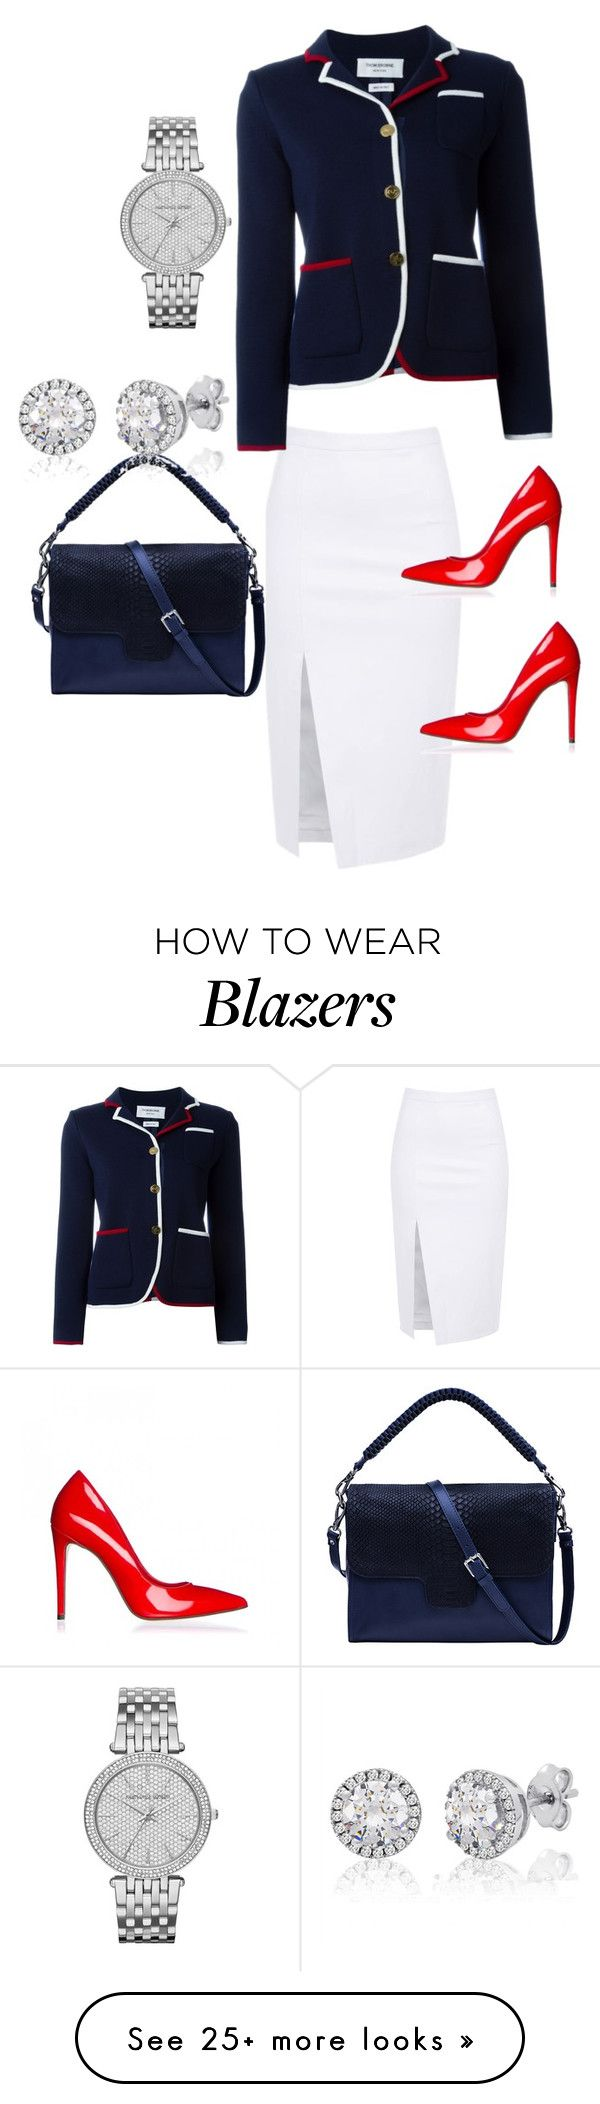 """Untitled #355"" by stylemirror on Polyvore featuring Thom Browne, Lili Radu and Michael Kors"